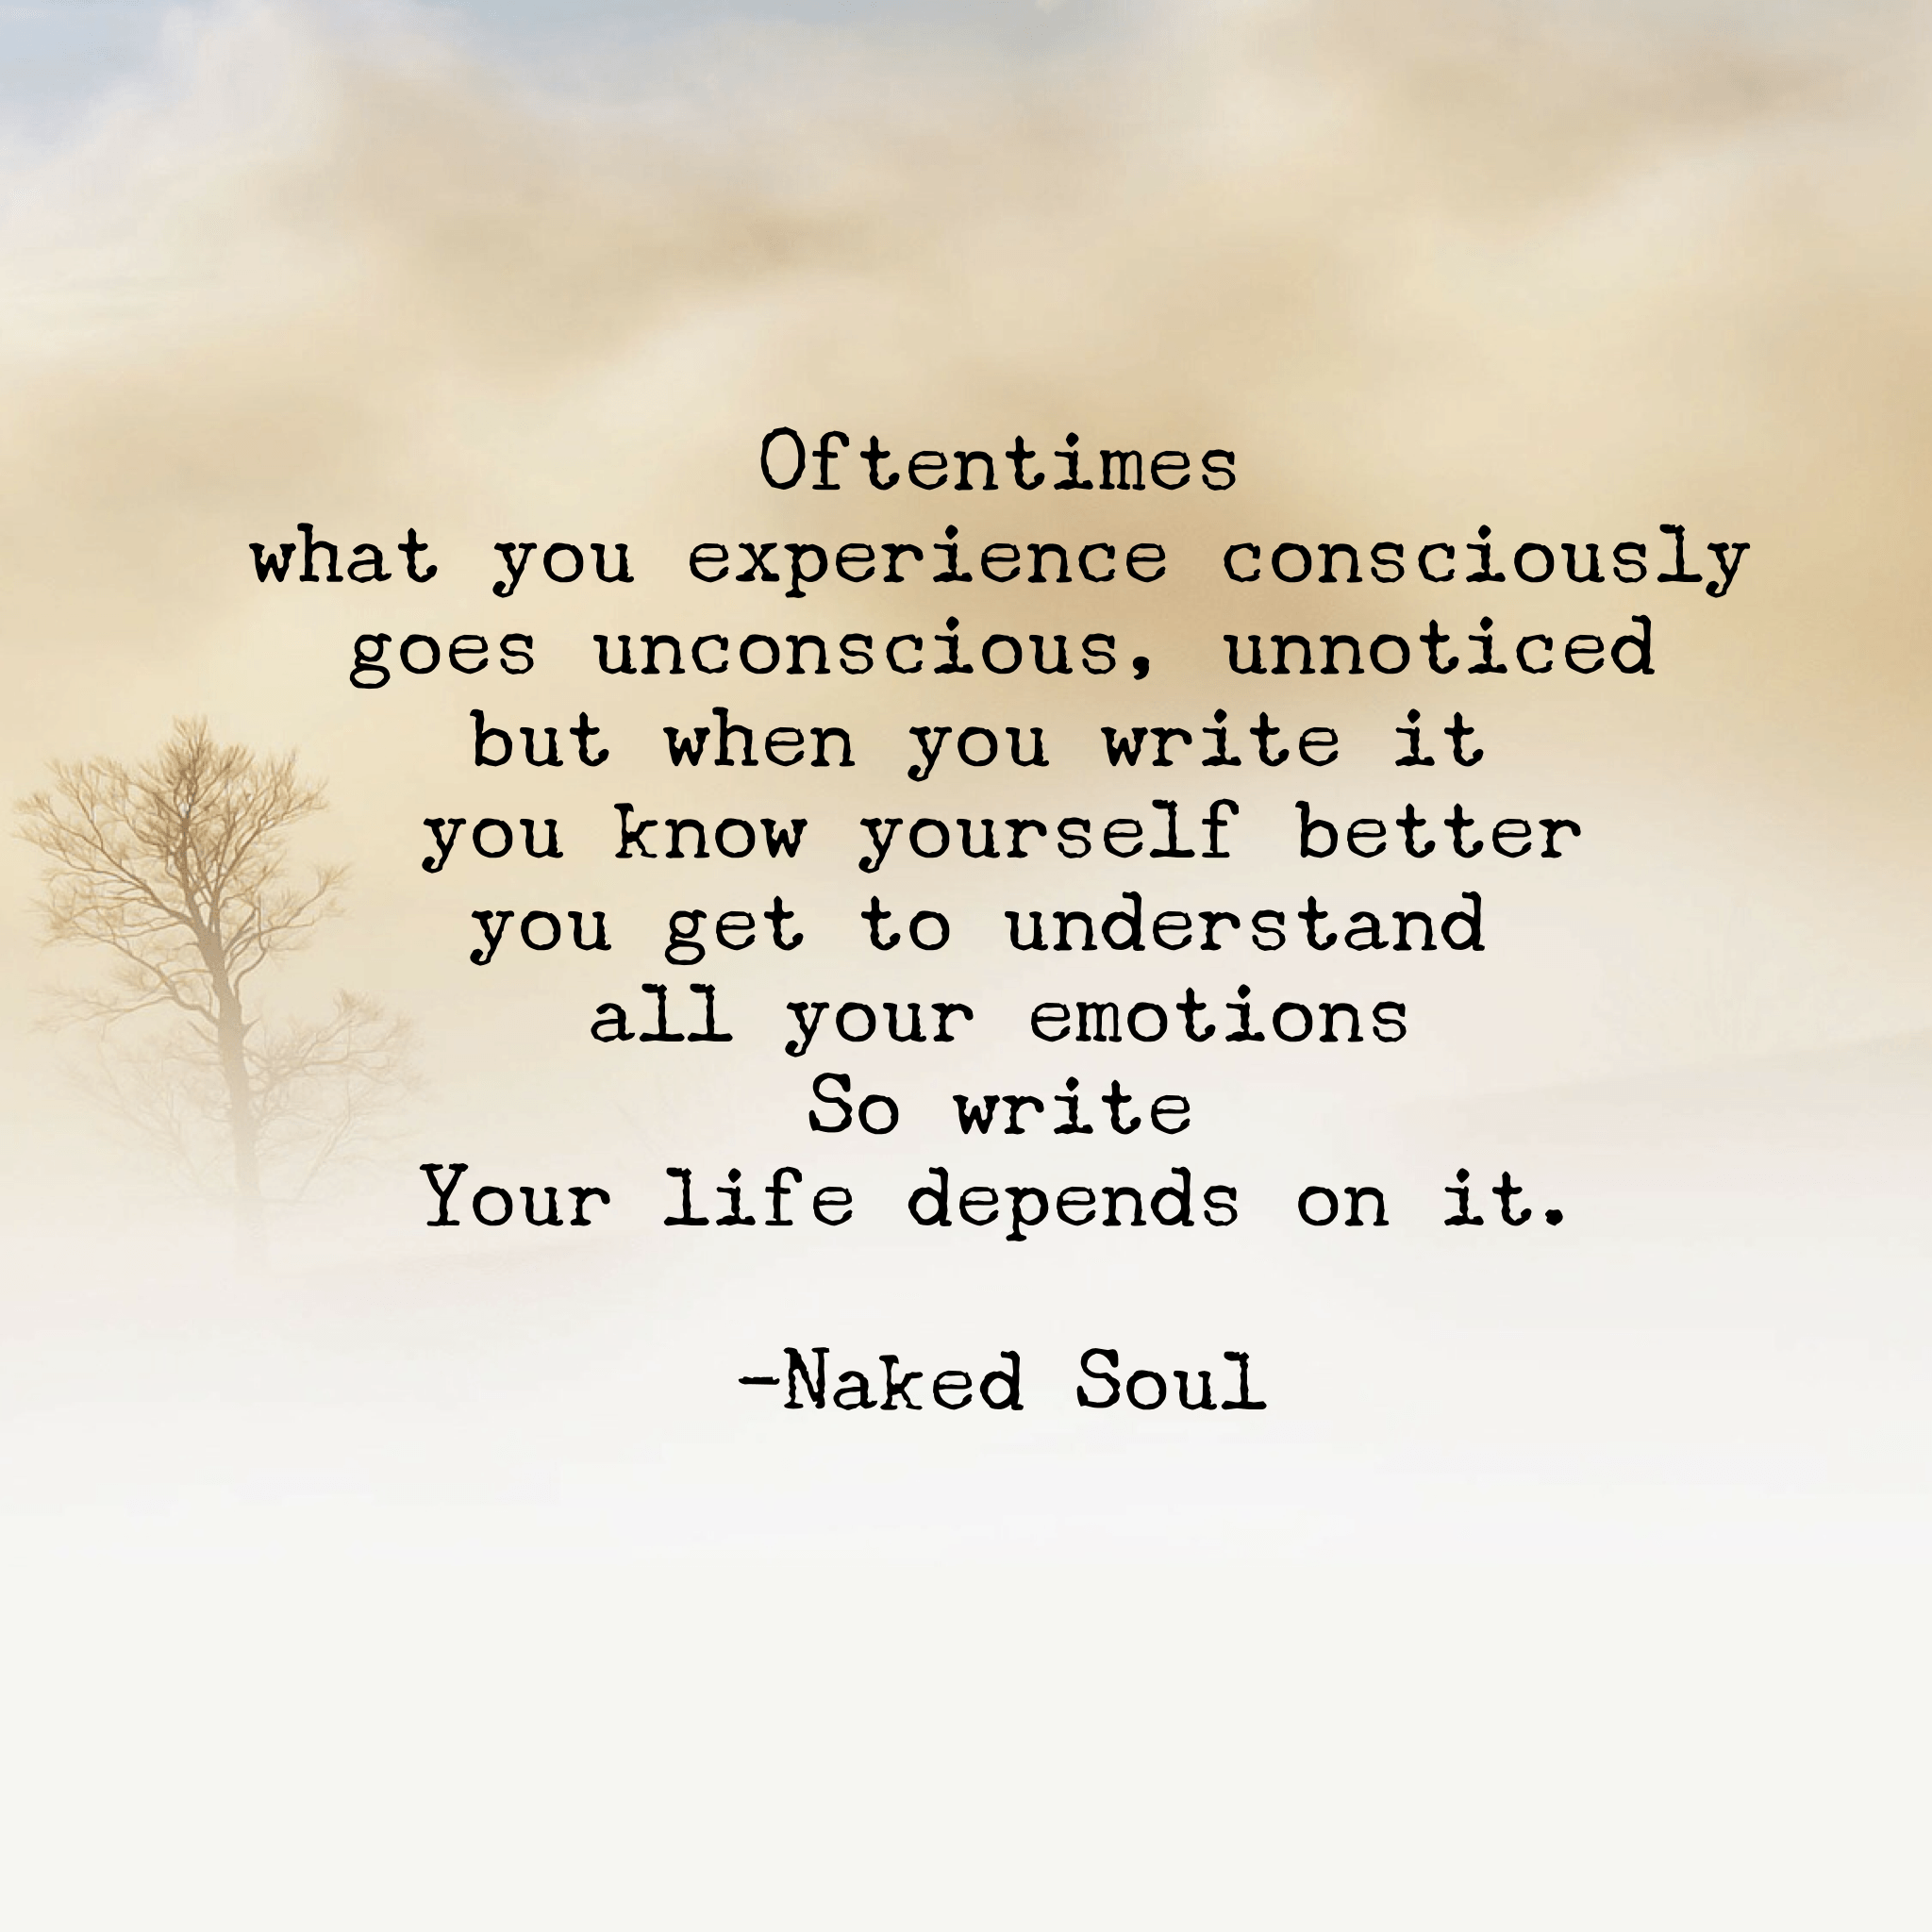 Oftentimes what you experience consciously goes unconscious, unnoticed but when you write it you know yourself better you get to understand all your emotions So write Your life depends on it.